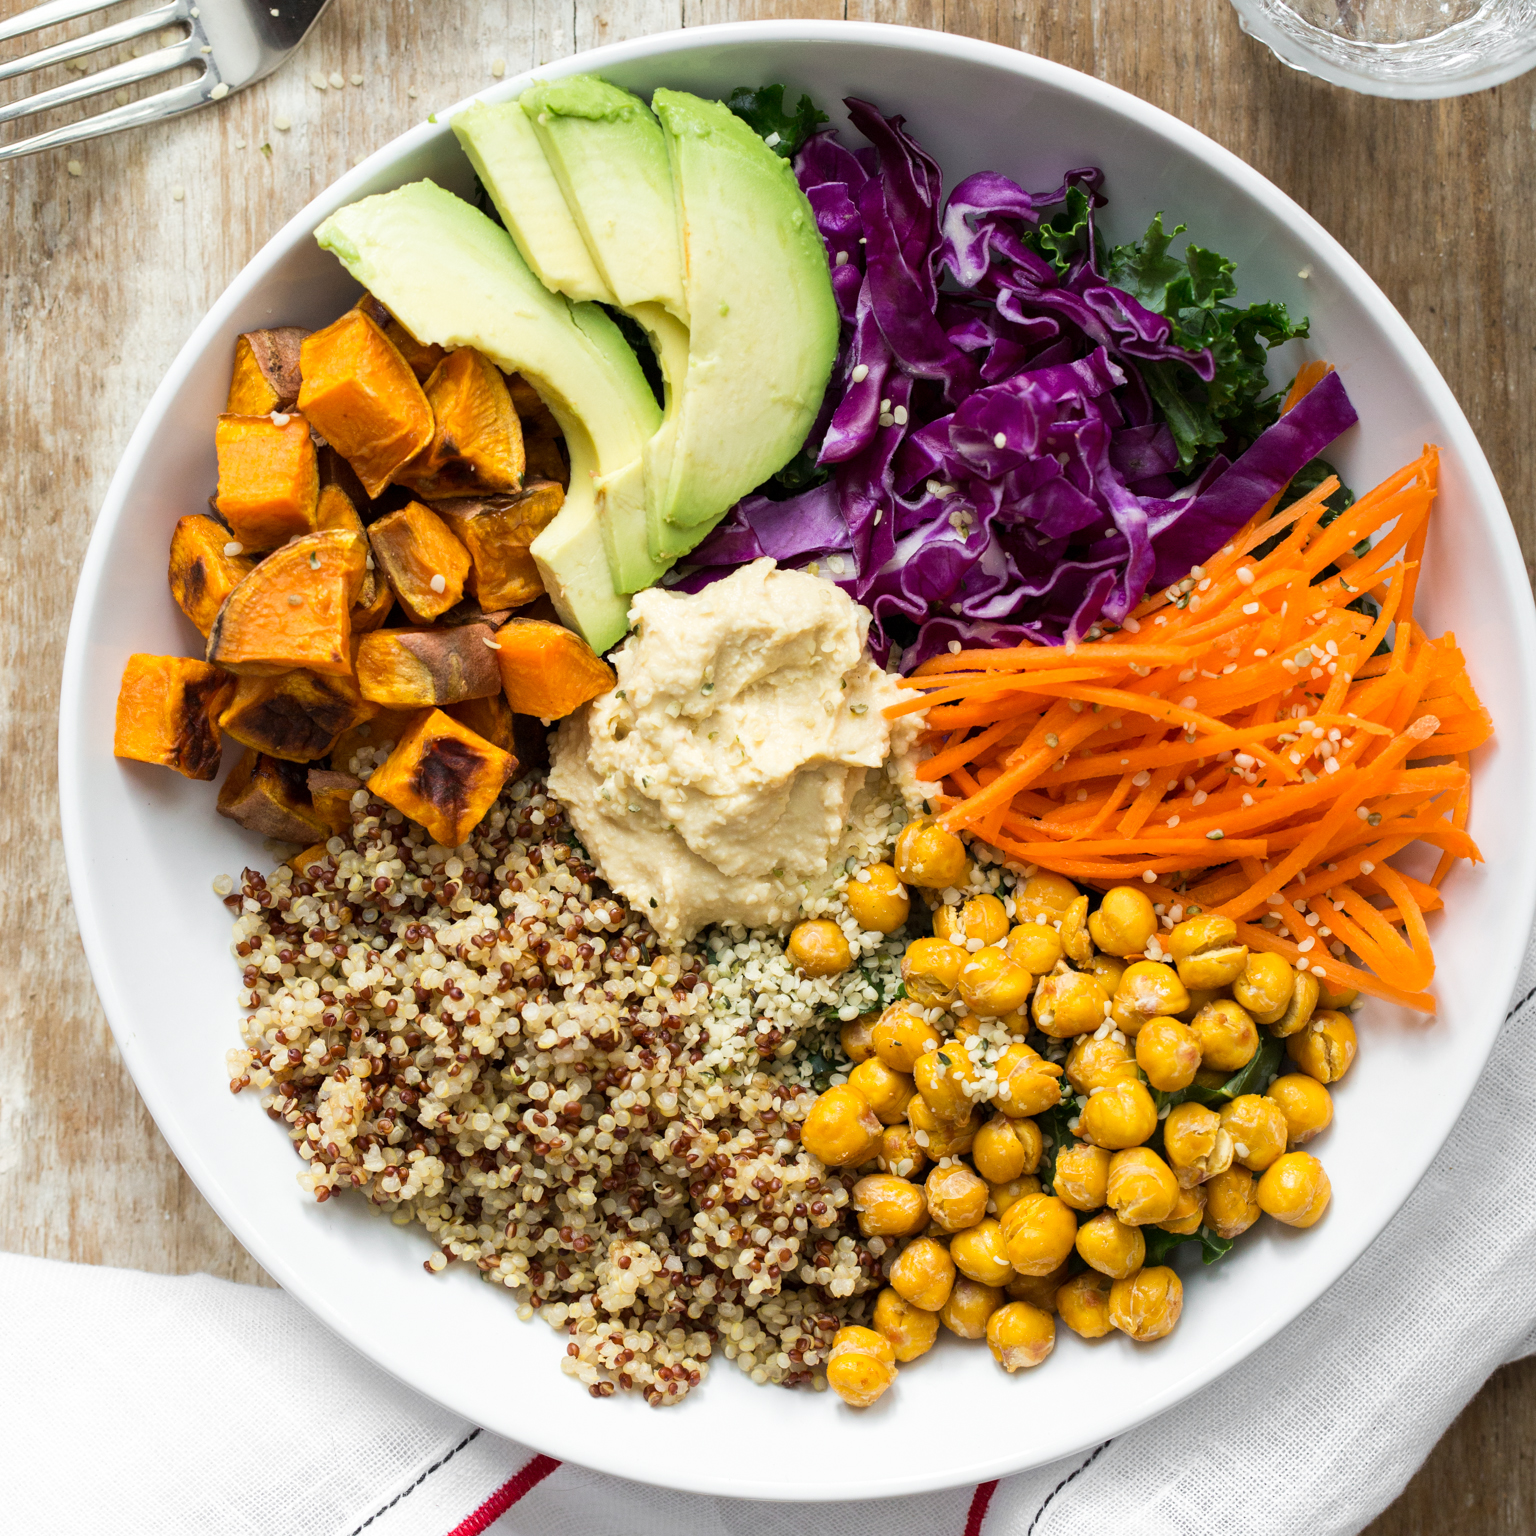 Vegan diet yes or no the pros cons of going vegan egan diet yes or no forumfinder Choice Image